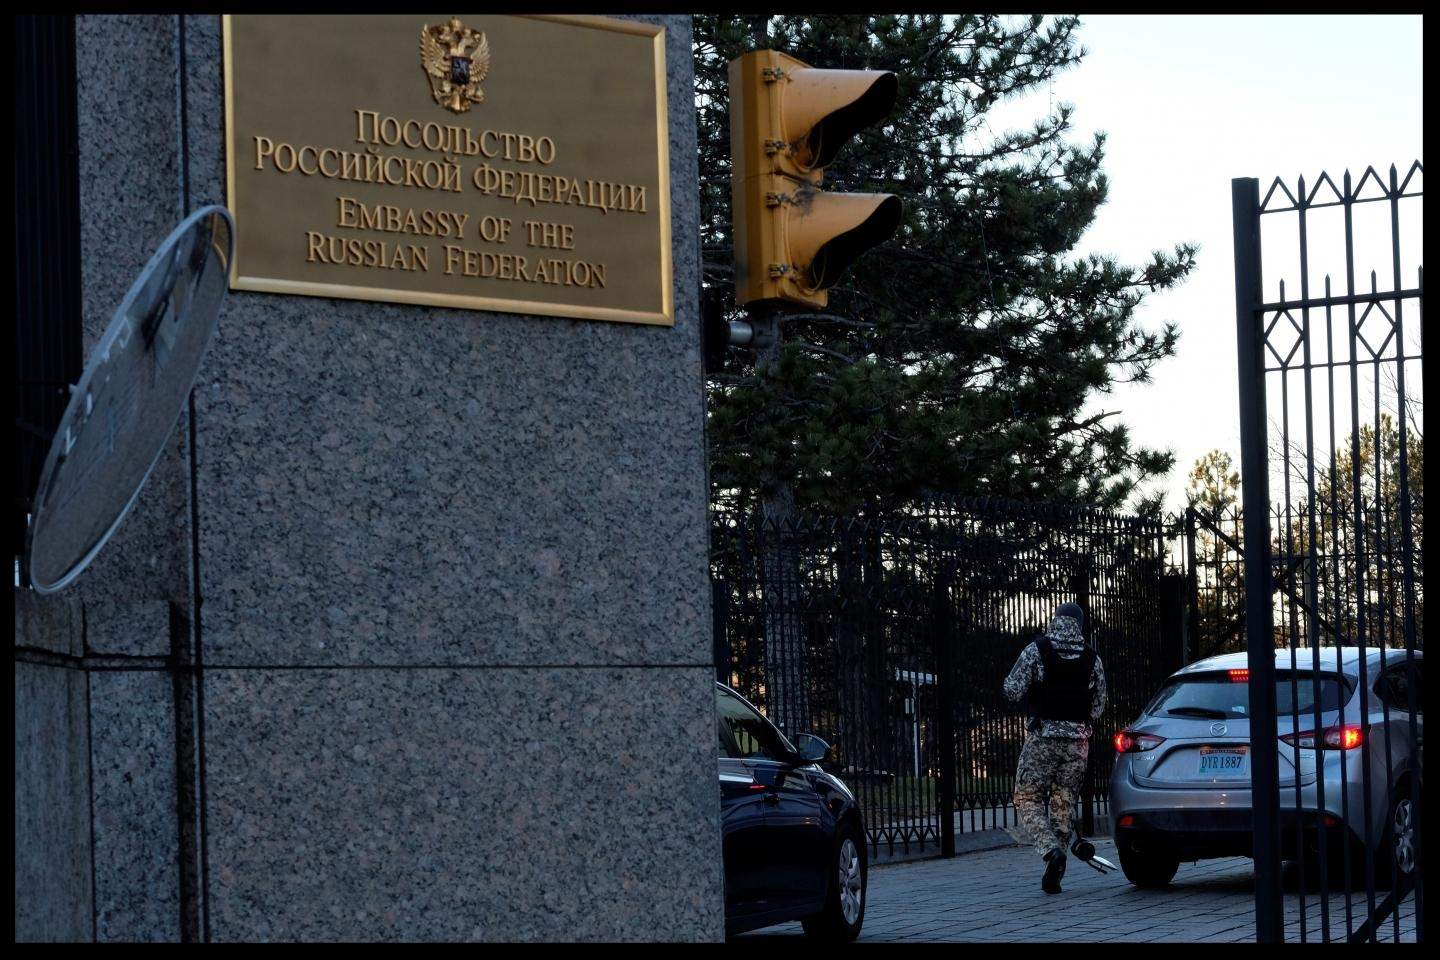 """A guard screens cars entering the Russian embassy on Wisconsin Avenue in Washington, December 29, 2016. The embassy has at times become actively involved in international disputes between the U.S. and Russia, most recently accusing the U.S. of """"kidnapping"""" a Russian citizen accused of cyber-fraud, June 5, 2017."""